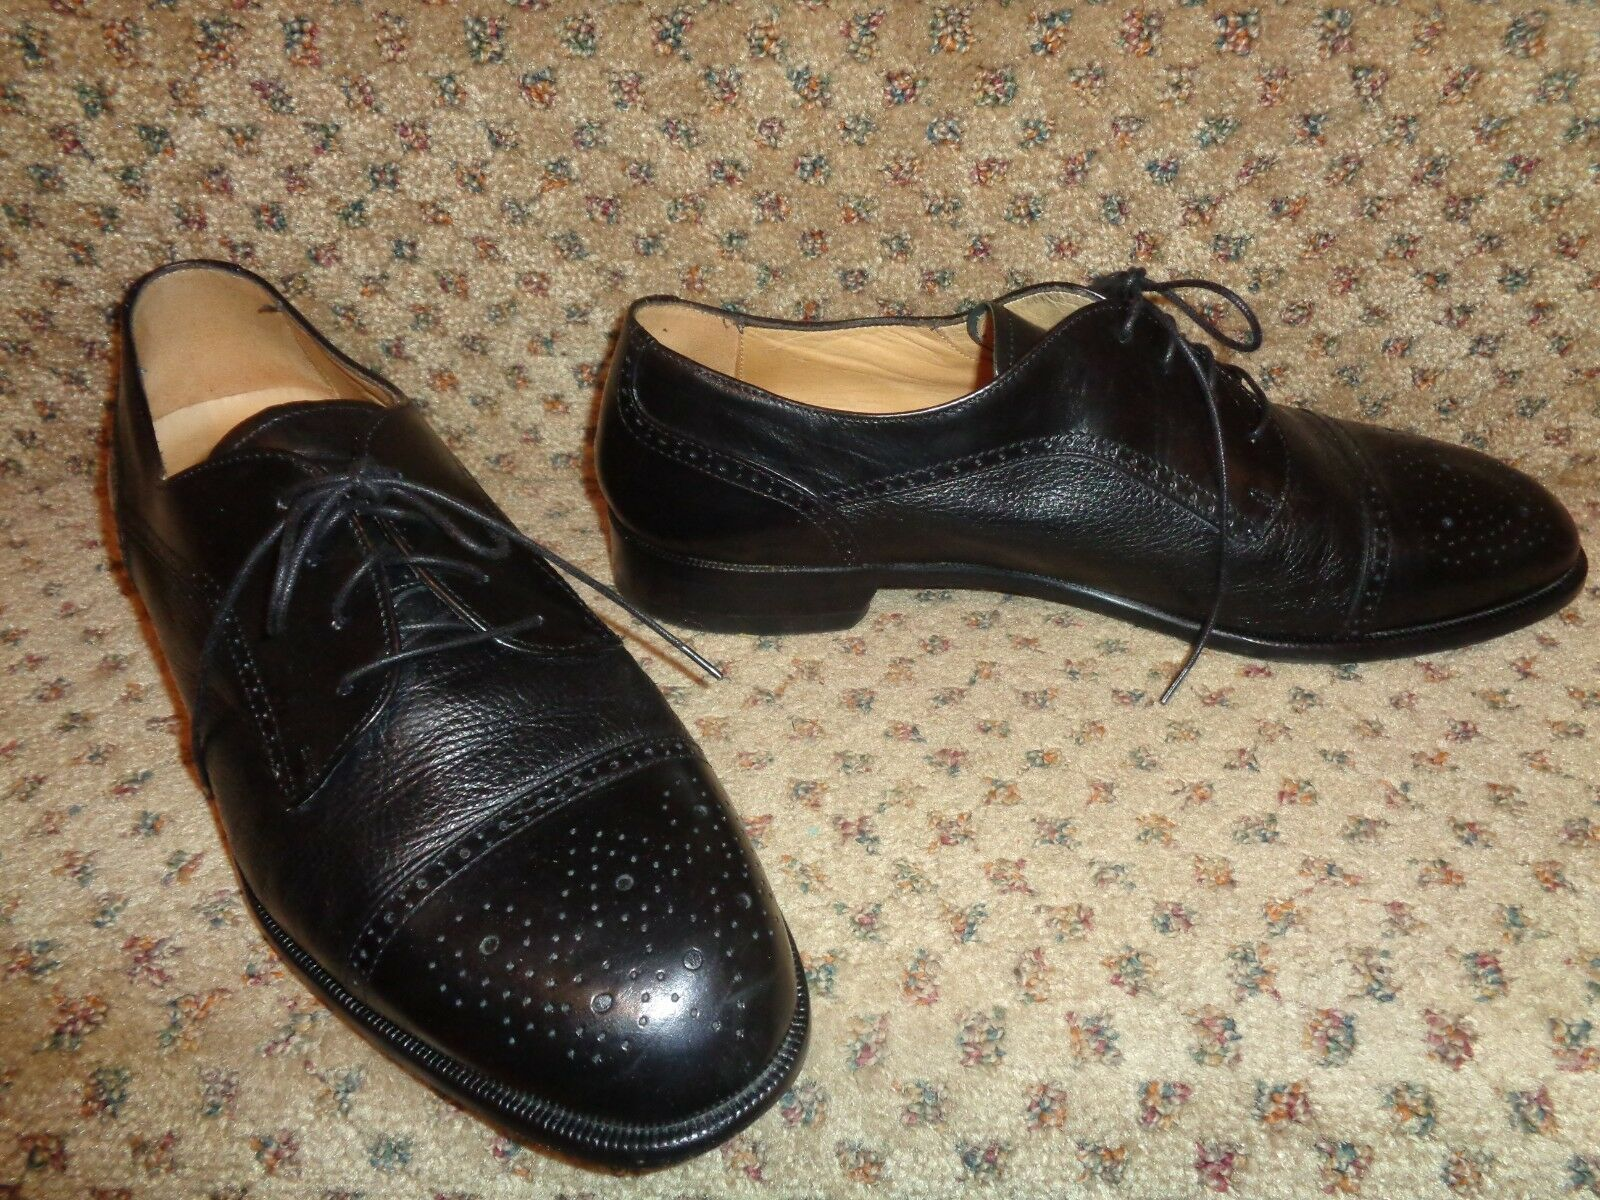 PRONTO UOMO FIRENZE ITALY BLACK FINE ALL LEATHER CAP-TOE BROGUE DRESS SHOES-10.5